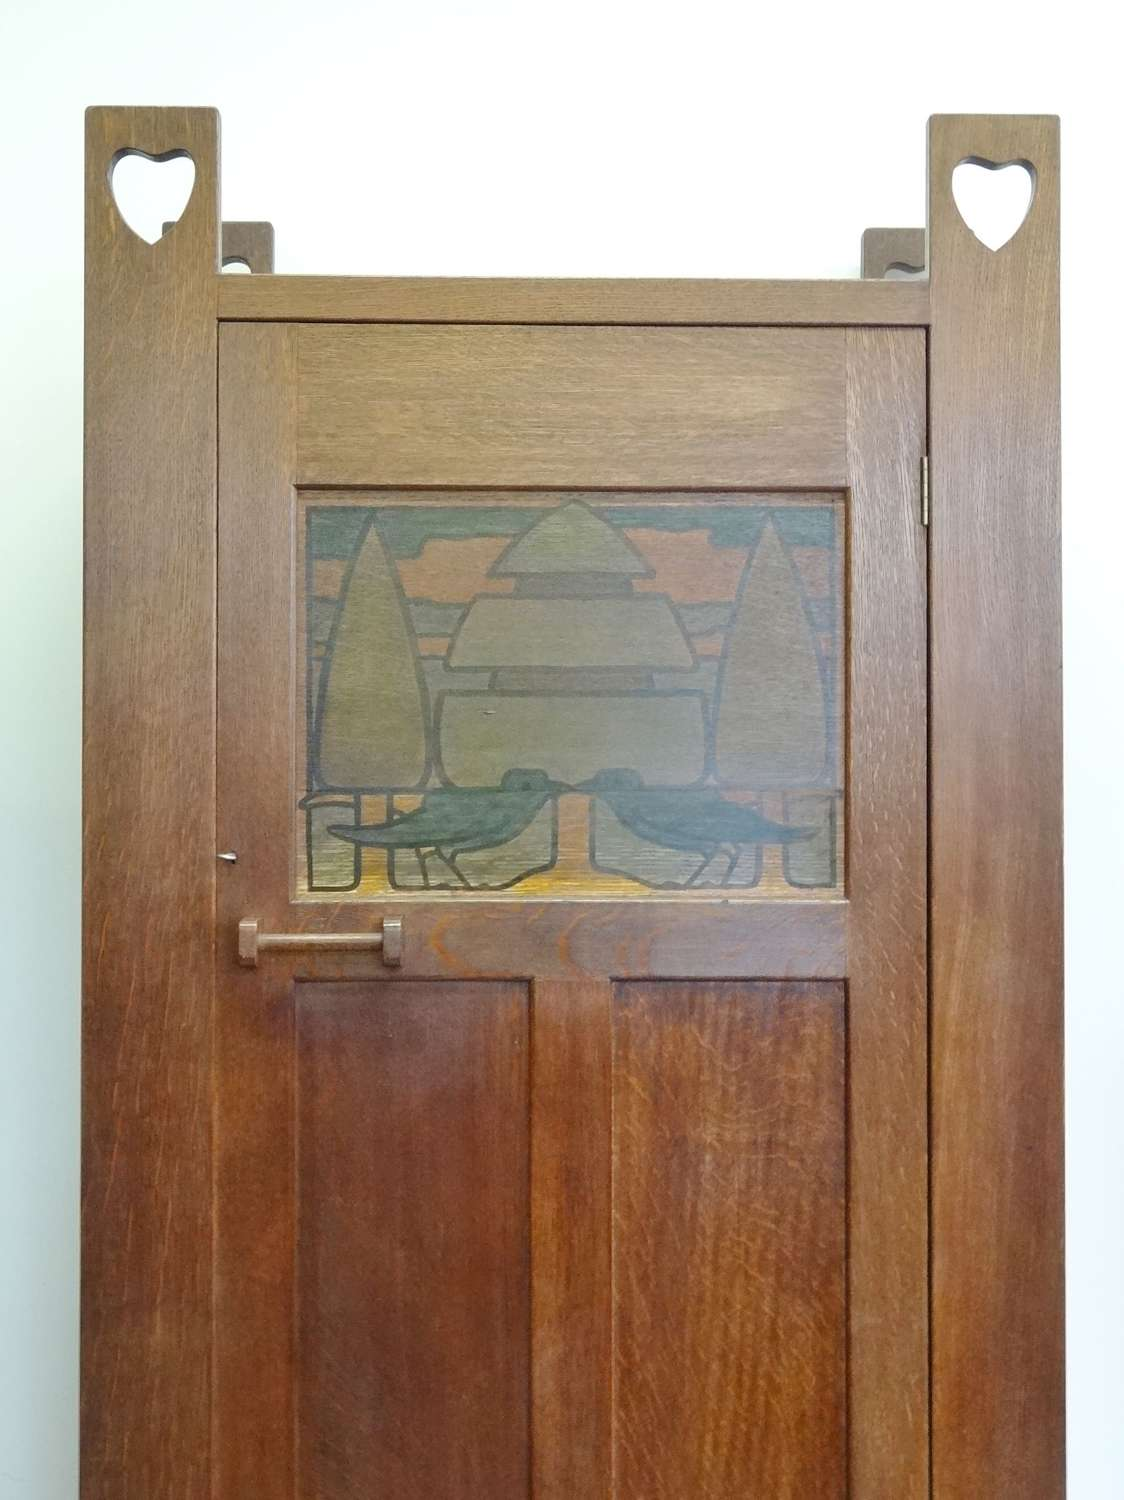 Rare Liberty & Co Arts & Crafts Athelstan Wyburd Voyseyesque wardrobe